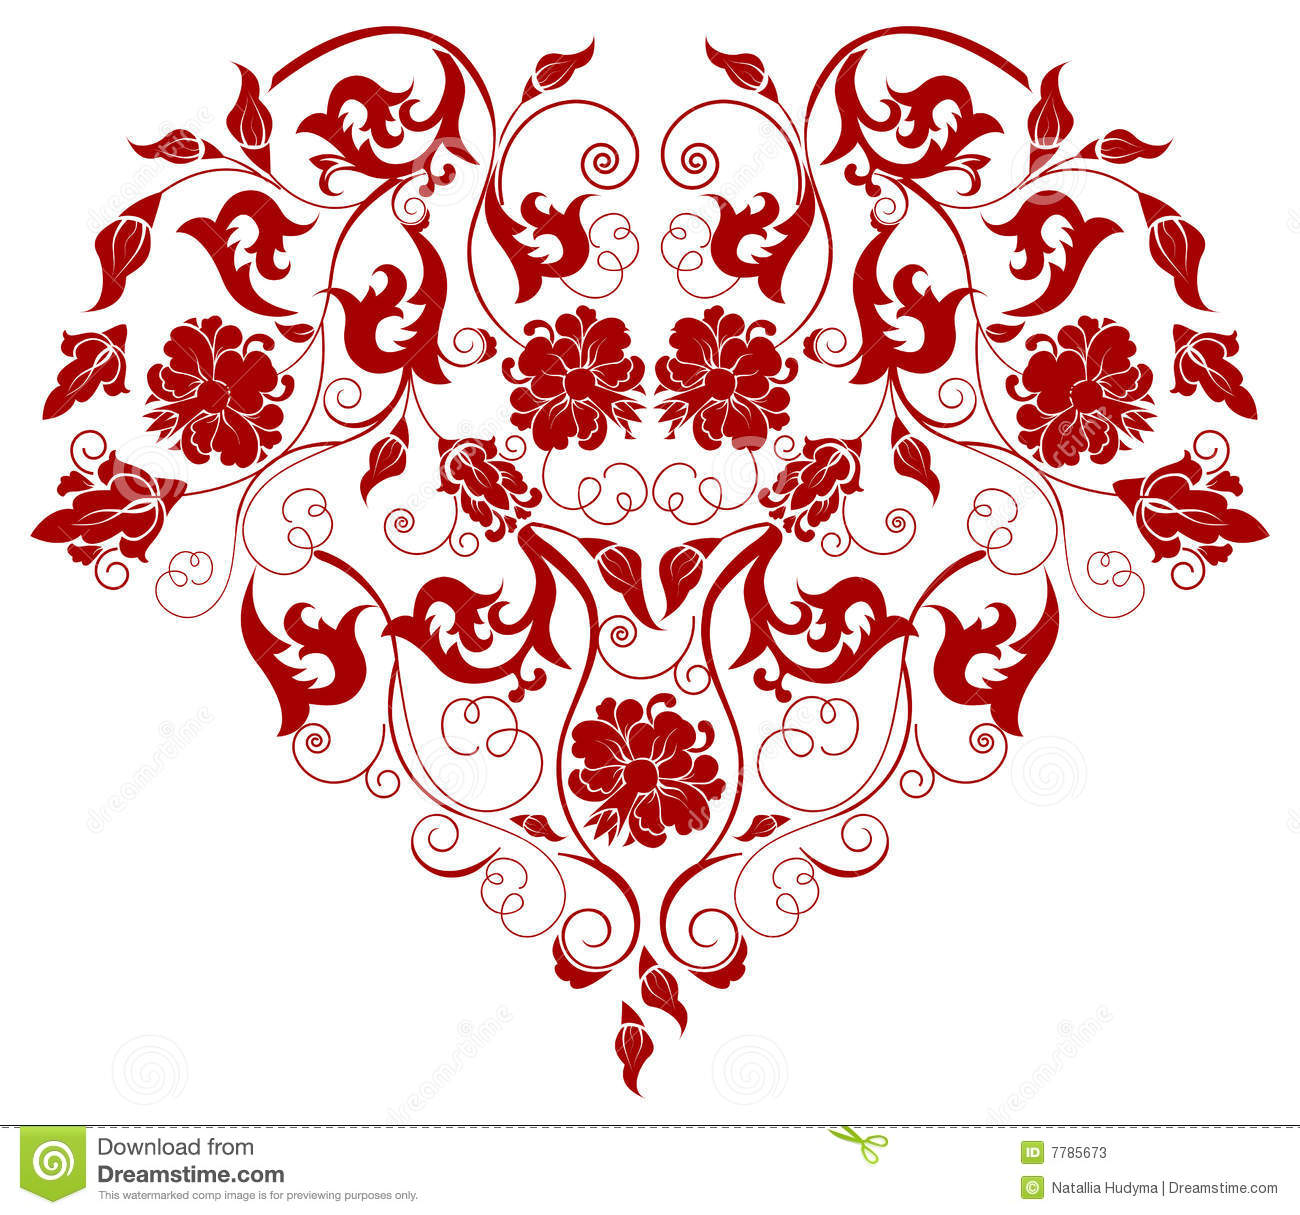 Filigree Heart Clipart - Clipart Suggest